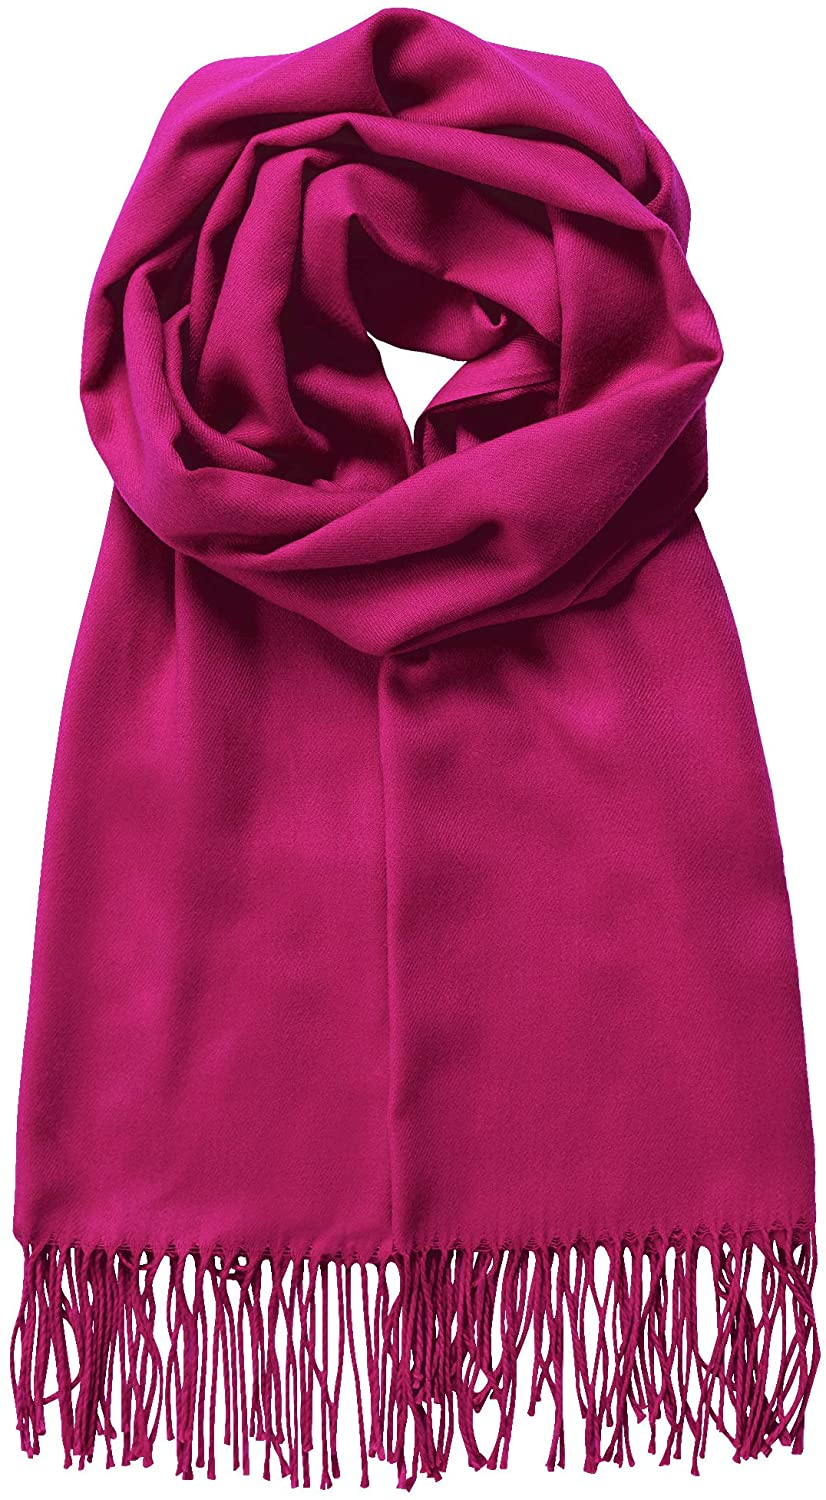 Made by Johnny Unisex Large Lightweight Soft Silky Real Cashmere Shawl Wrap Scarf